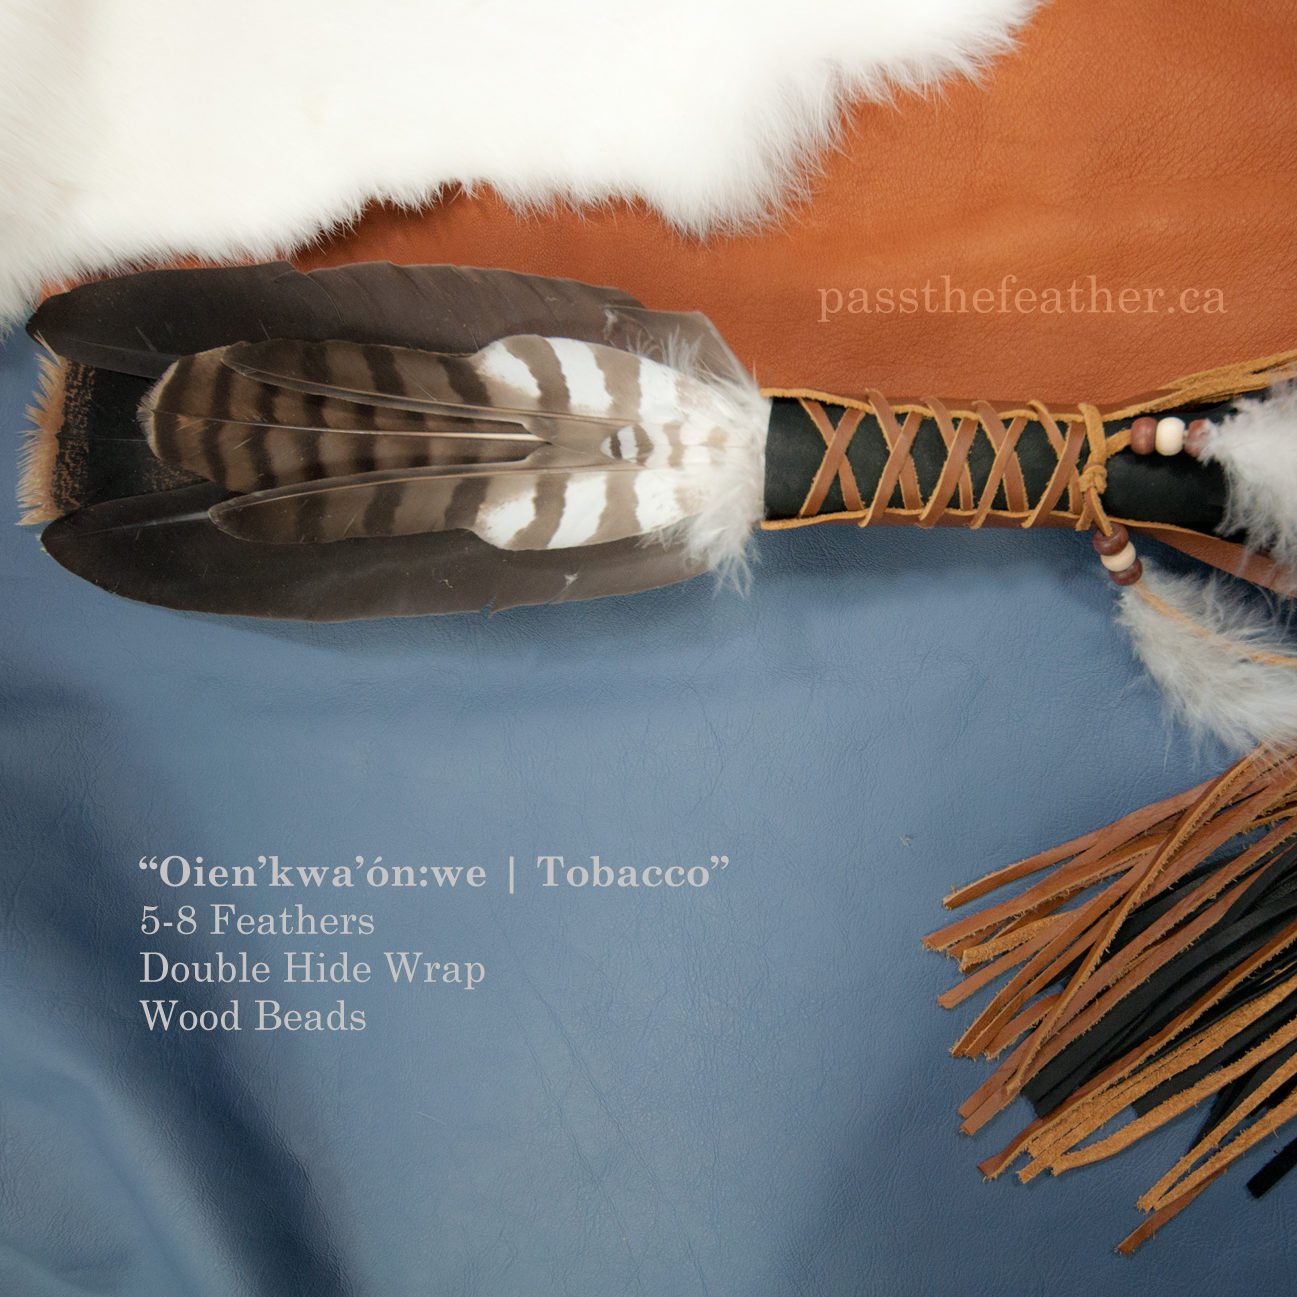 pass the feather, aboriginal arts collective of canada, indigenous art, aboriginal art, indigenous art directory, indigenous art workshops, feathers